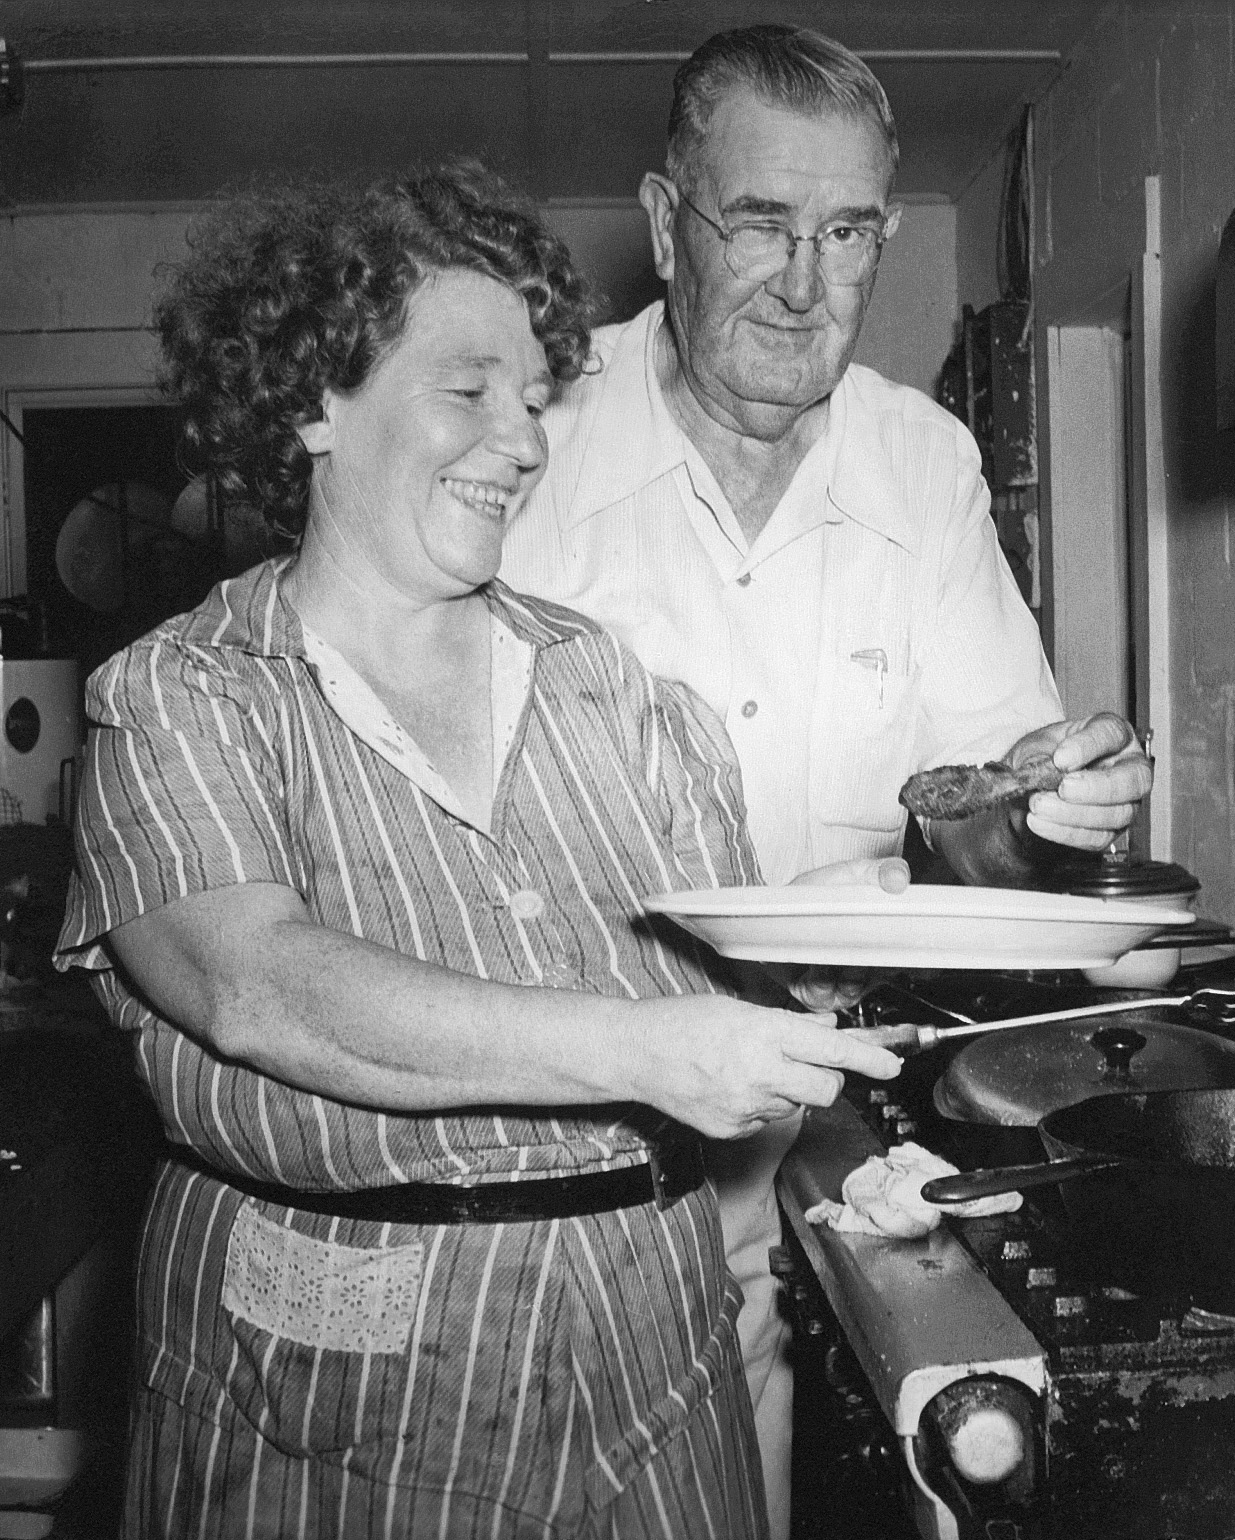 Clara and Bob Owens moved their restaurant from Roanoke Island to Nags Head in the 1940s.